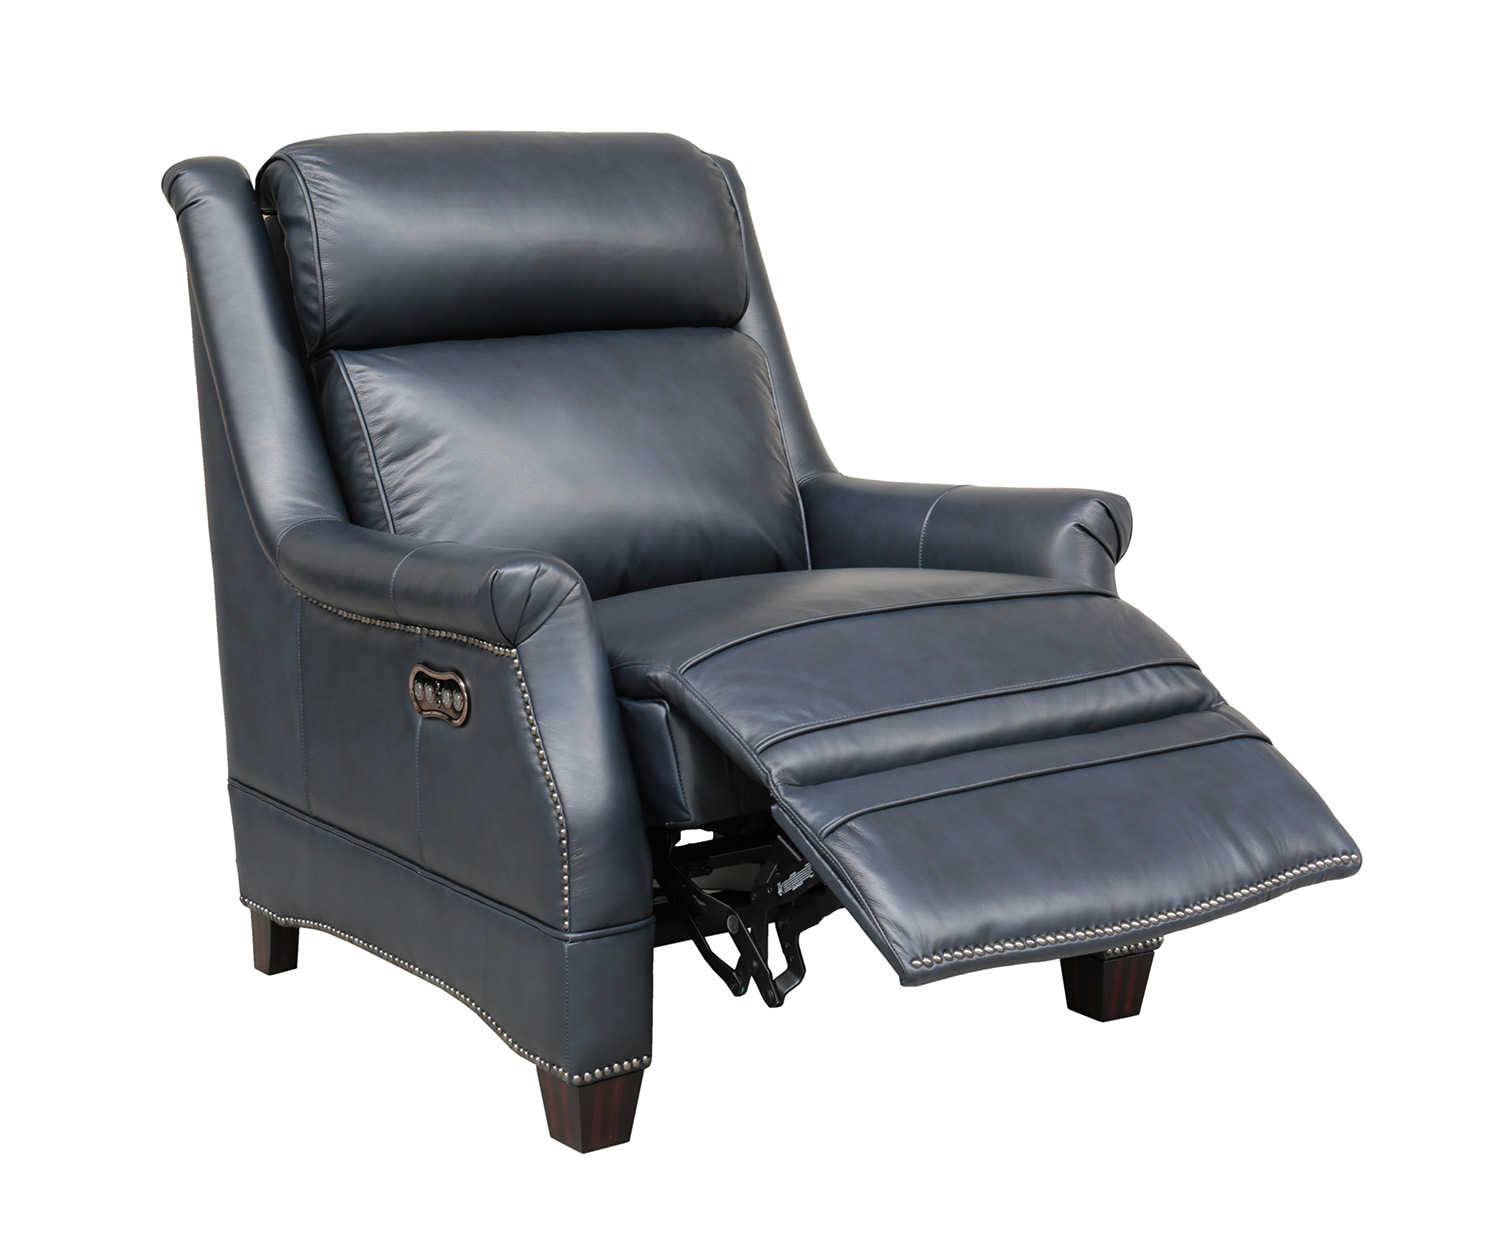 Barcalounger Warrendale Power Recliner Chair with Power Head Rest - Shoreham Blue/All Leather